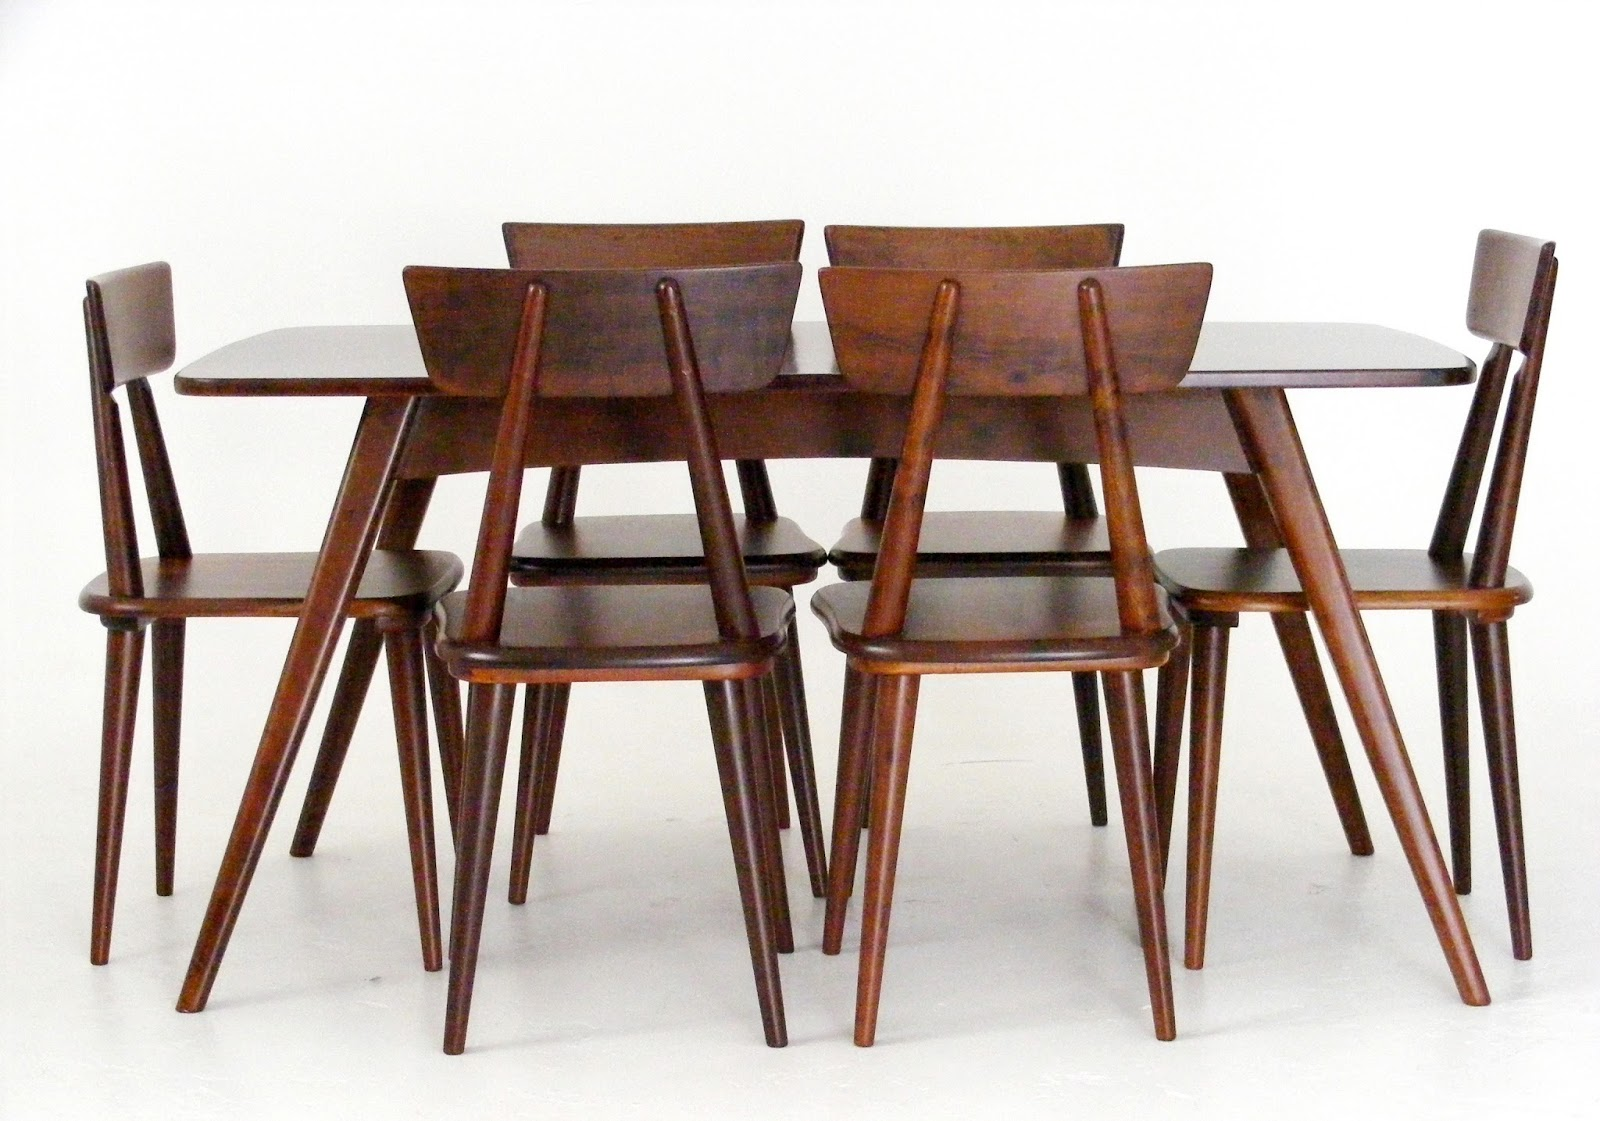 A Set Of 6 Solid Imbuia 1960s Meyer Chairs Designed And Manufactured By EE For Binnehuis Including An 8 Seater Dining Table